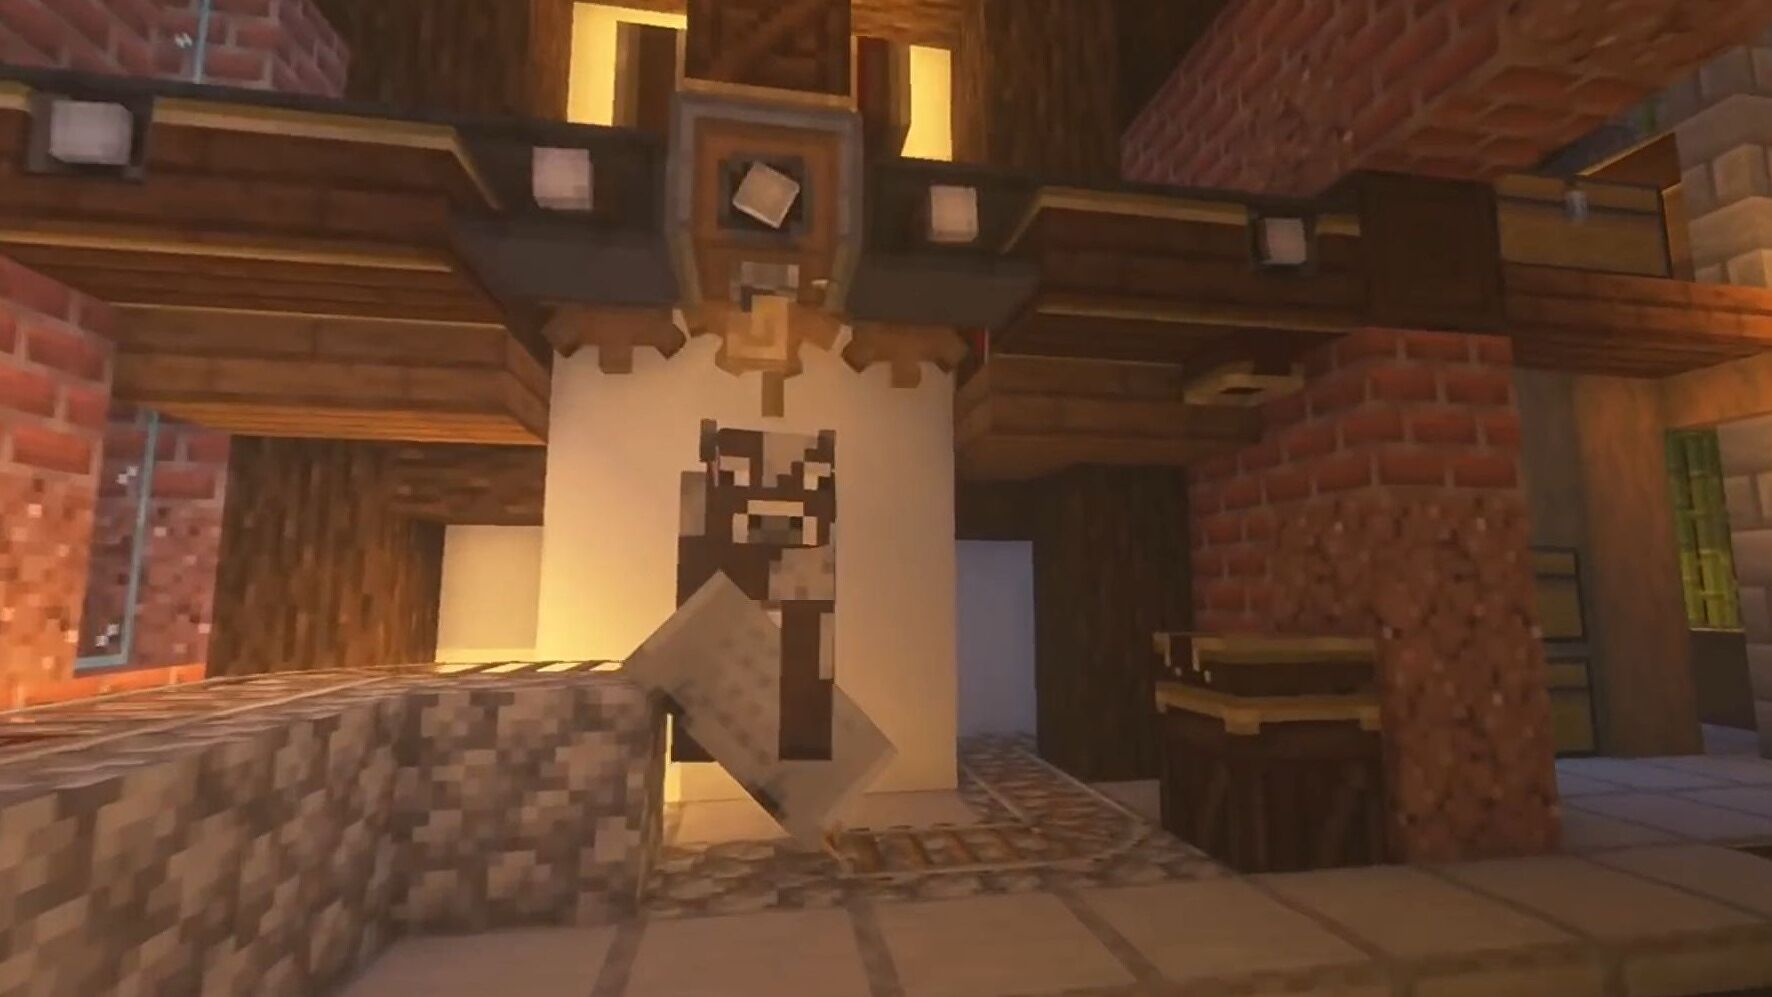 This mod's amazing contraptions made me reinstall Minecraft